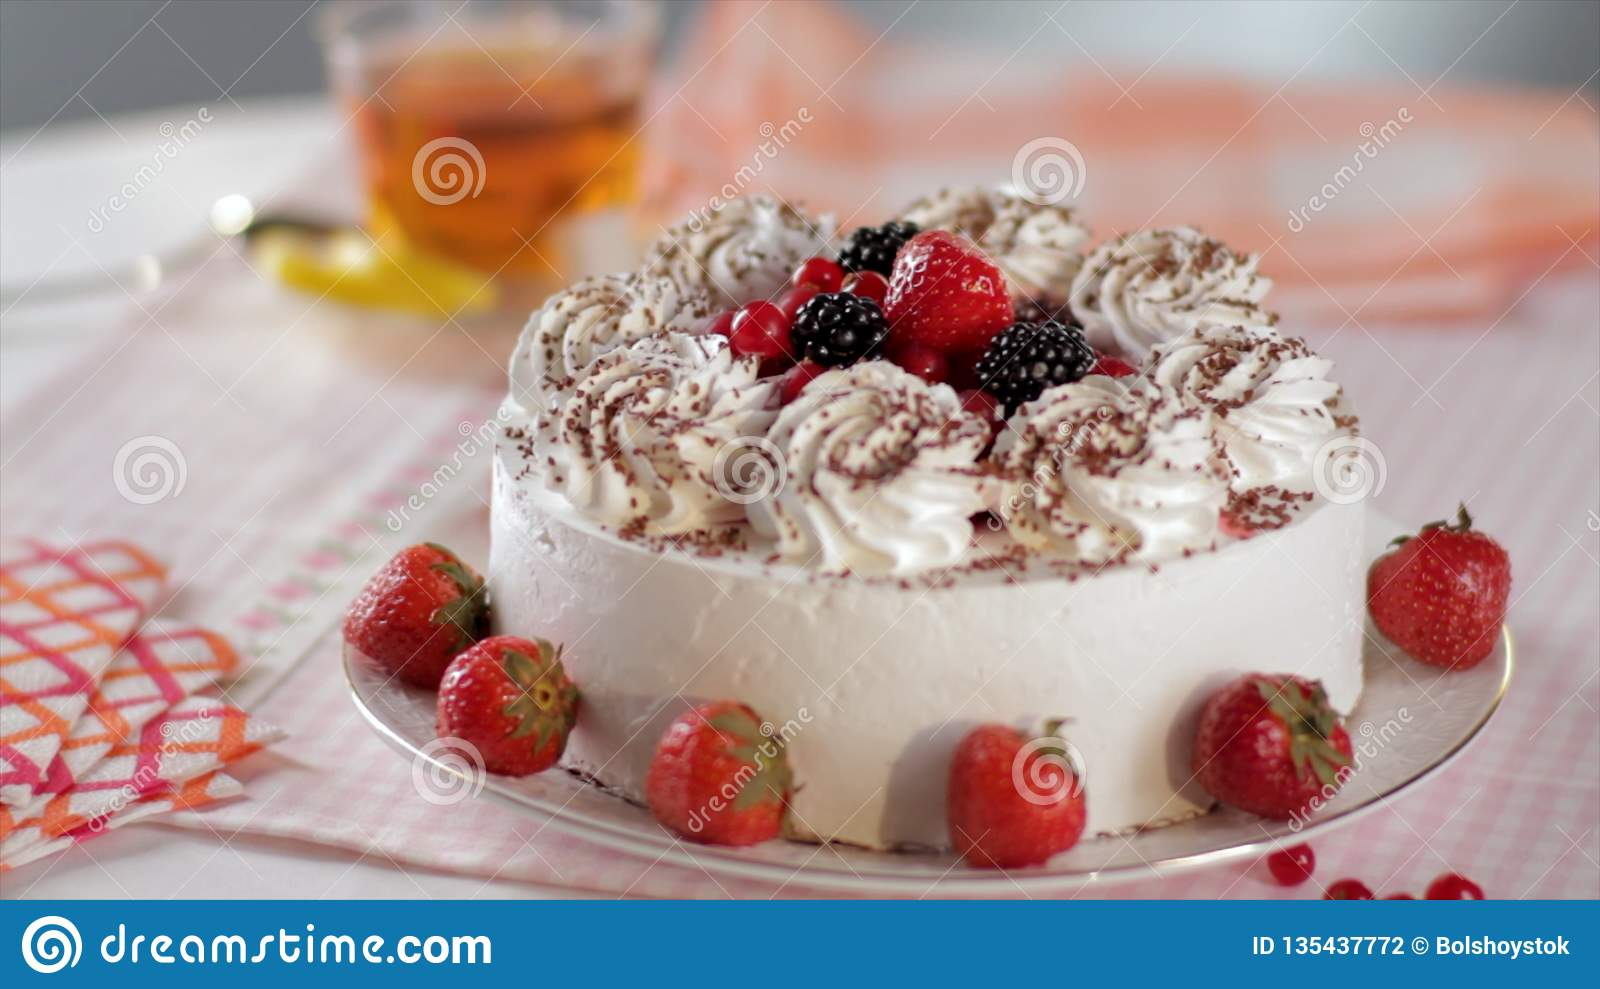 Cake With Whipped Cream And Strawberries On A Stand Close